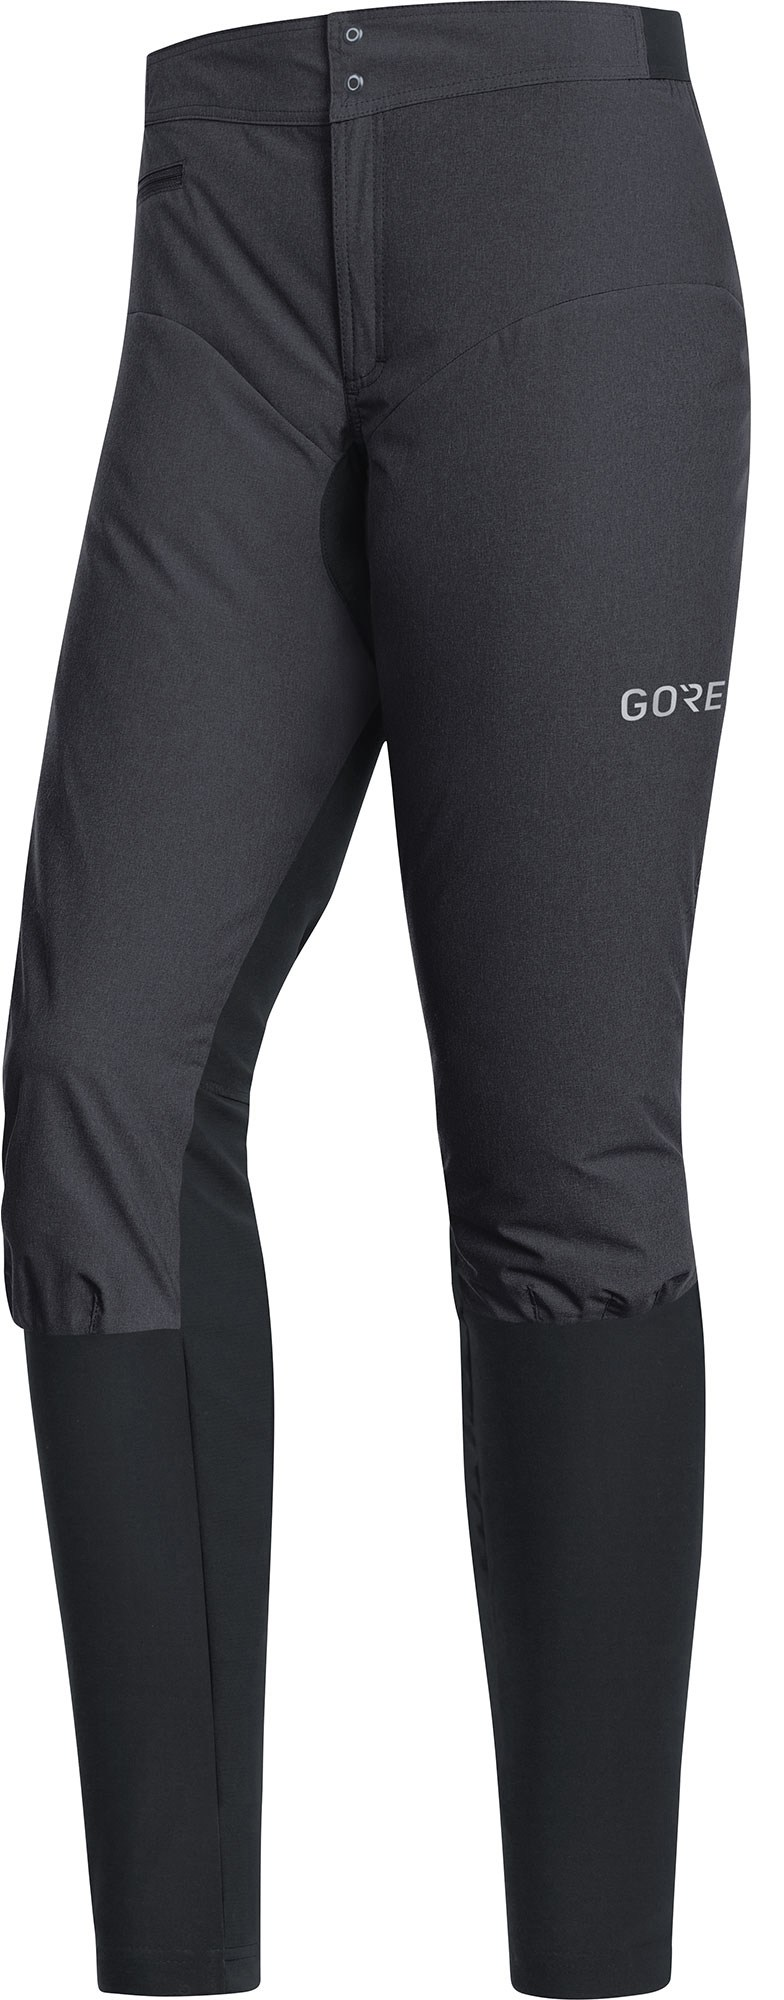 GORE BIKE WEAR C5 Gore Windstopper Trail Pants - Women's